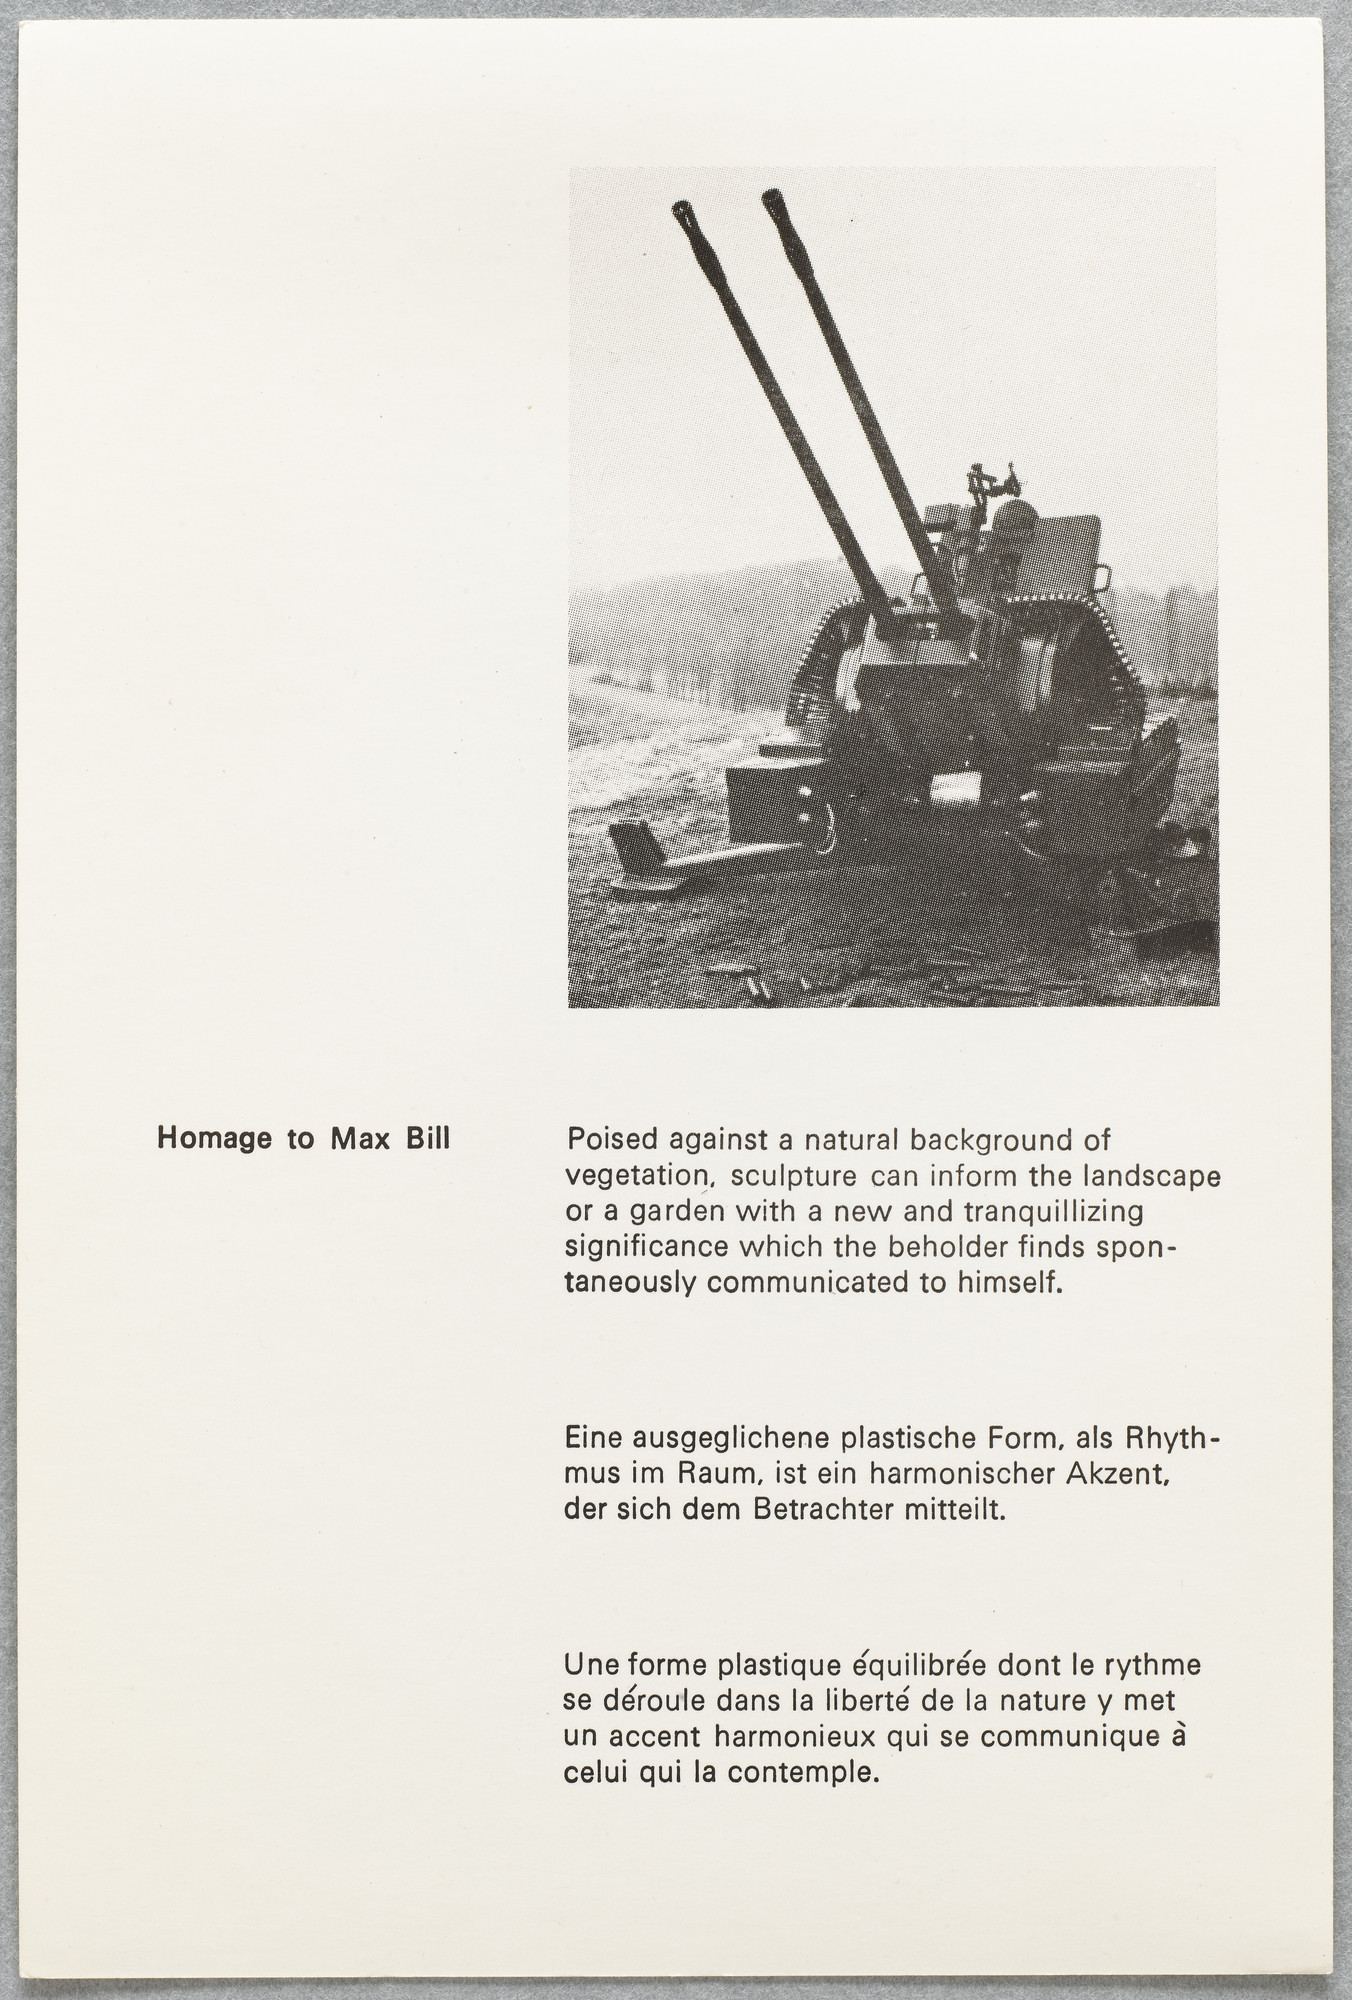 Ian Hamilton Finlay. Wild Hawthorn Weapons Series No. 2: Homage to Max Bill. 1974